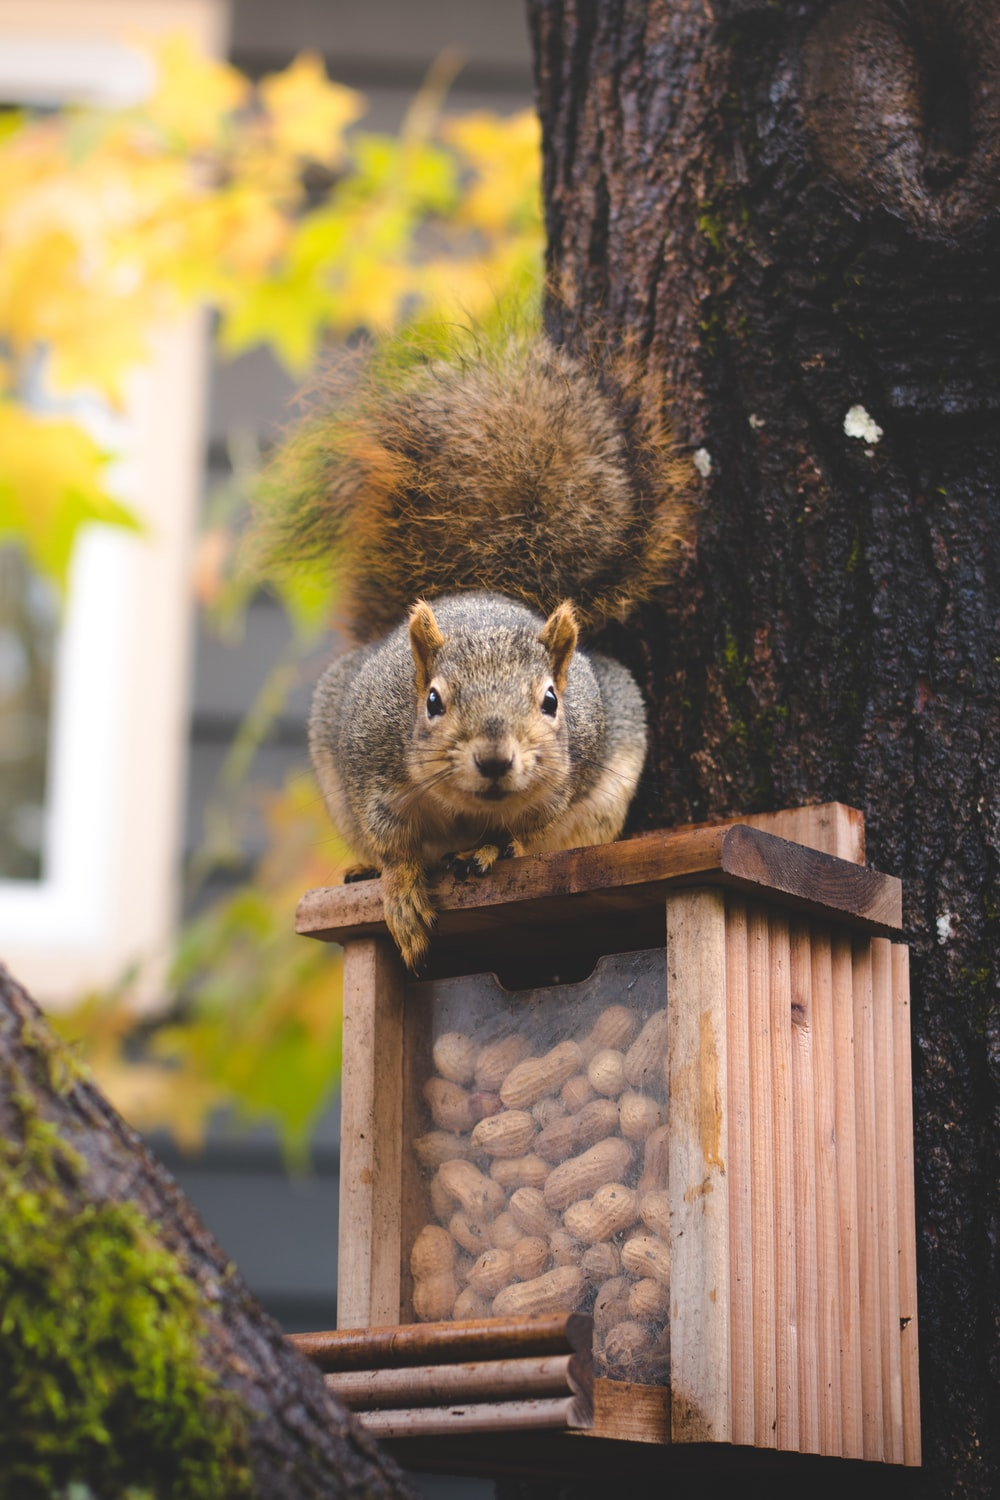 brown squirrel on brown wooden box full of nuts mounted on the tree at daytime